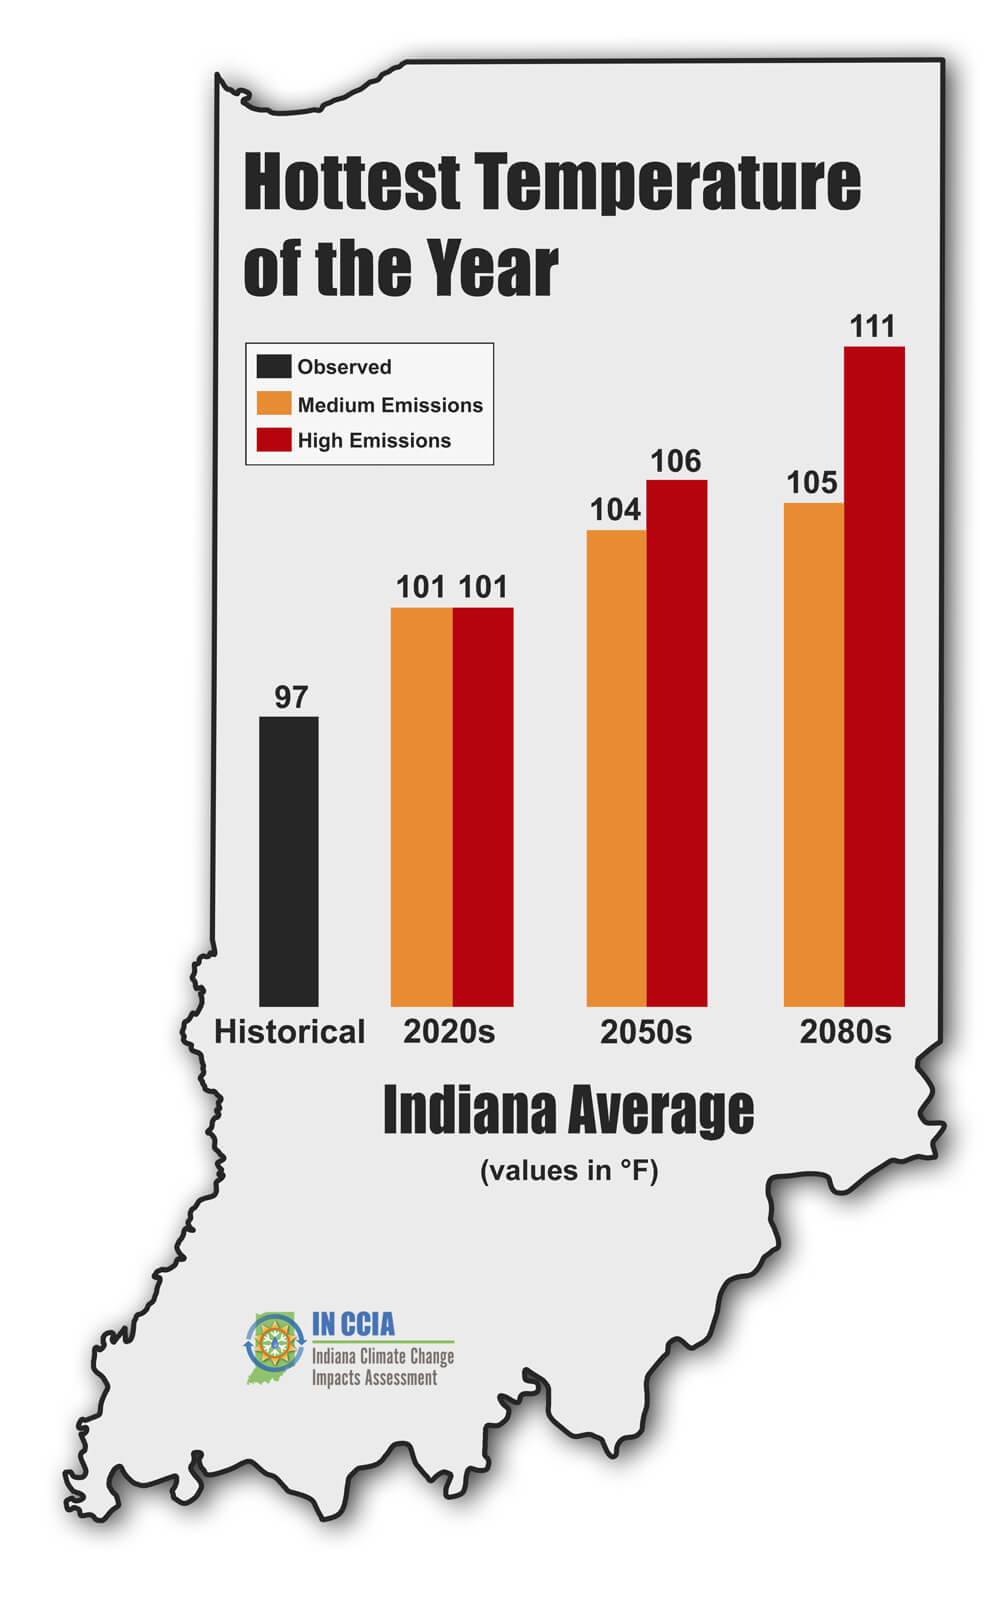 Hottest temperature of the year for Indiana.